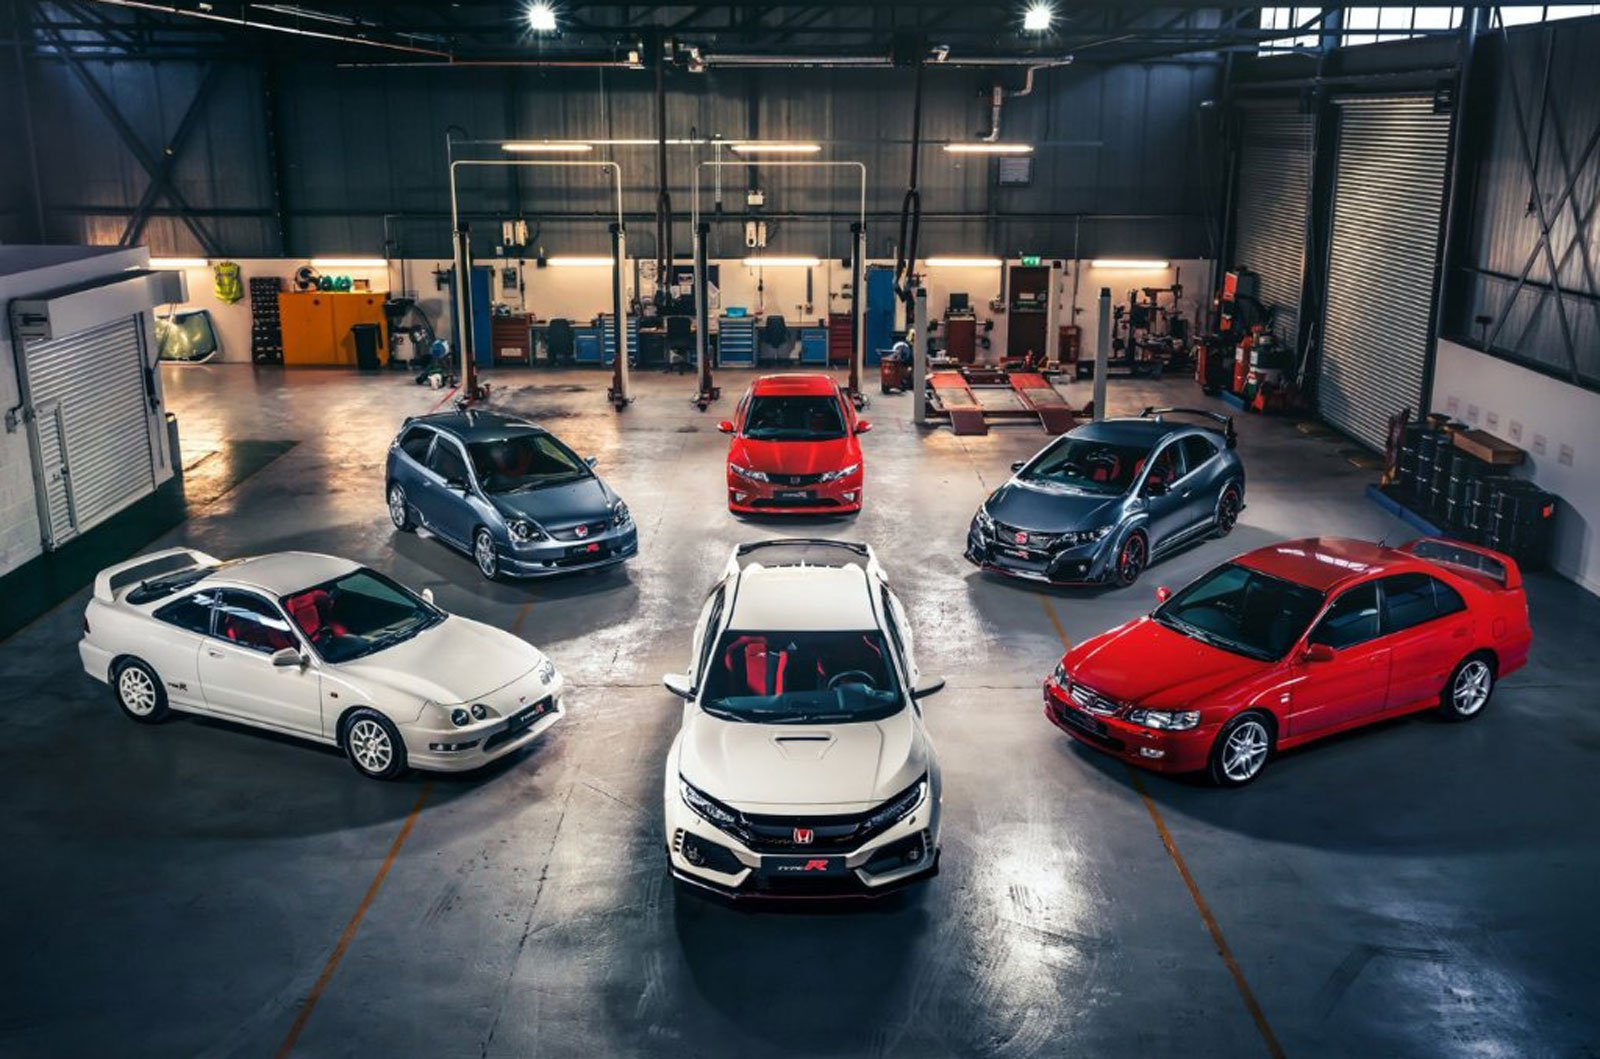 Honda Civic Type R and ancestors